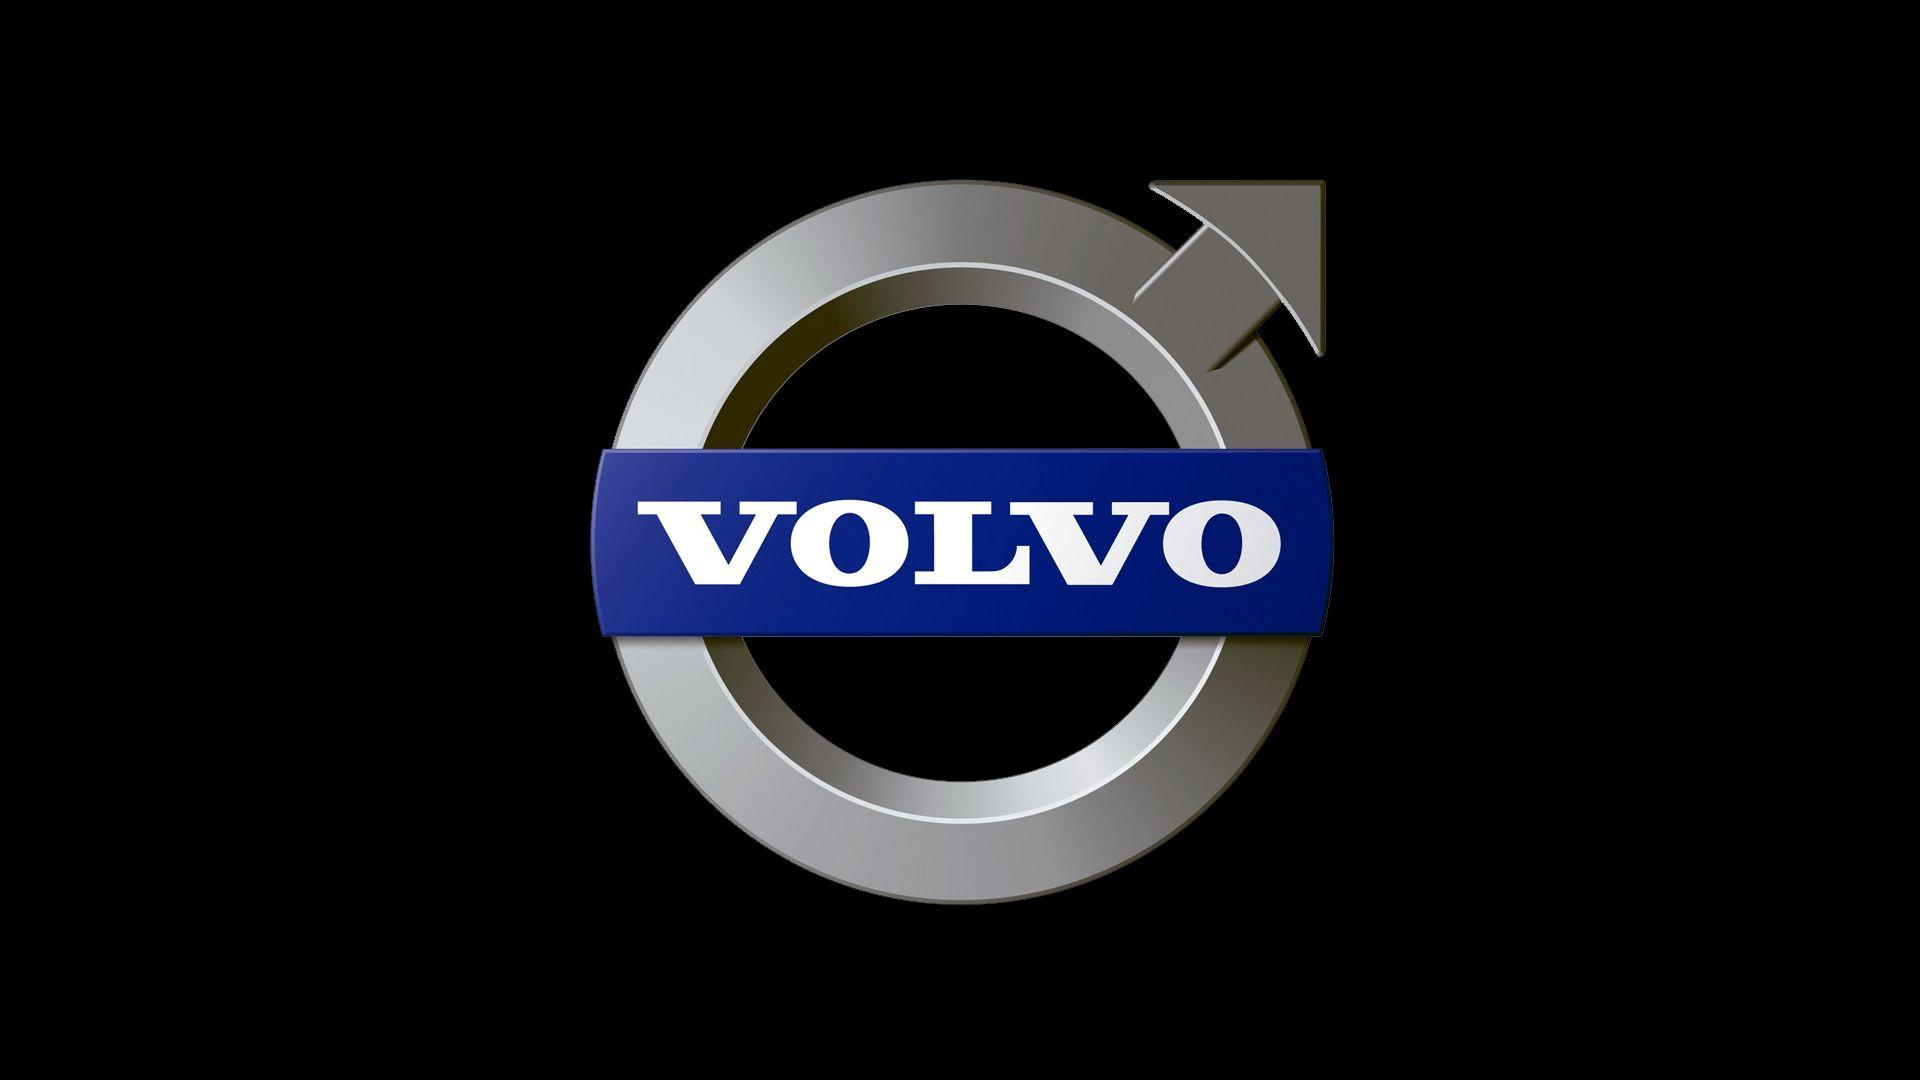 Volvo Logo Wallpapers Full HD